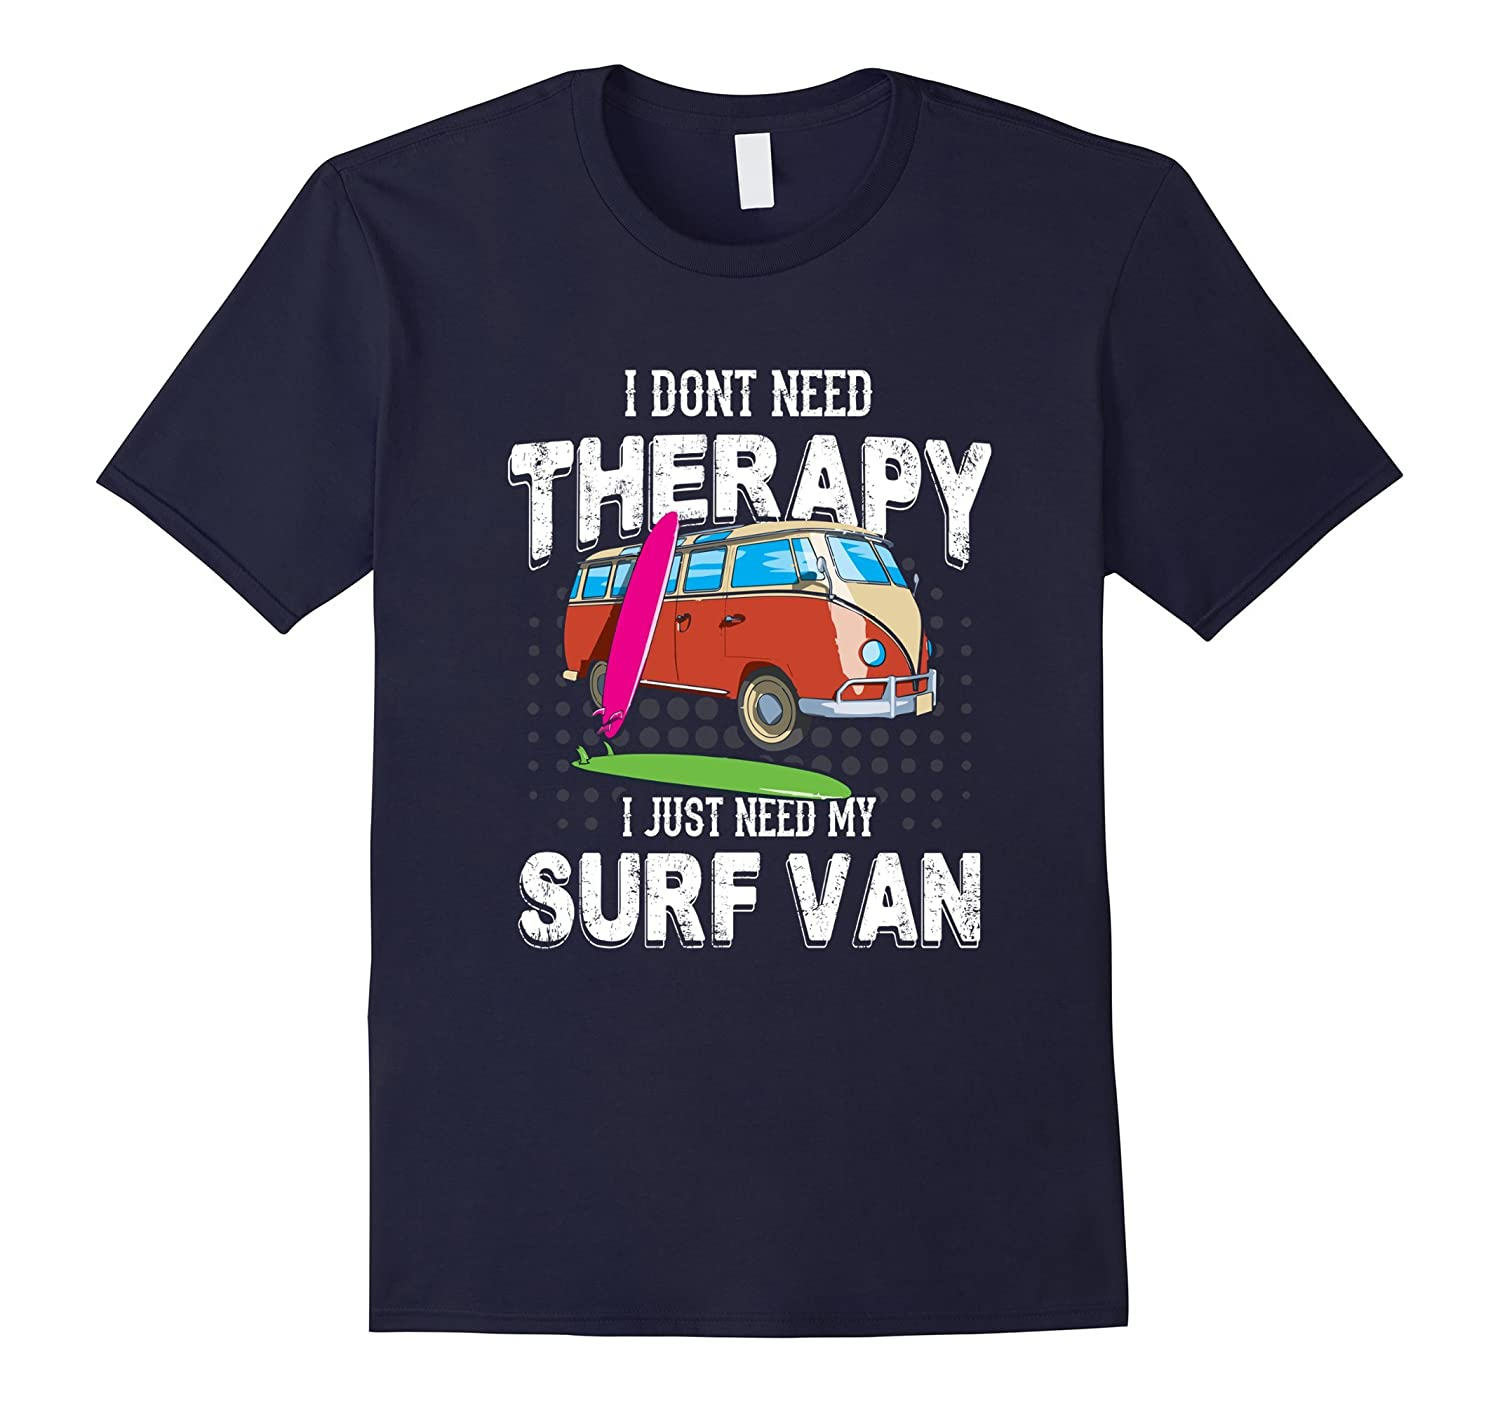 Driving My Surf Van Better Than Therapy! Surfer T-Shirt-CL